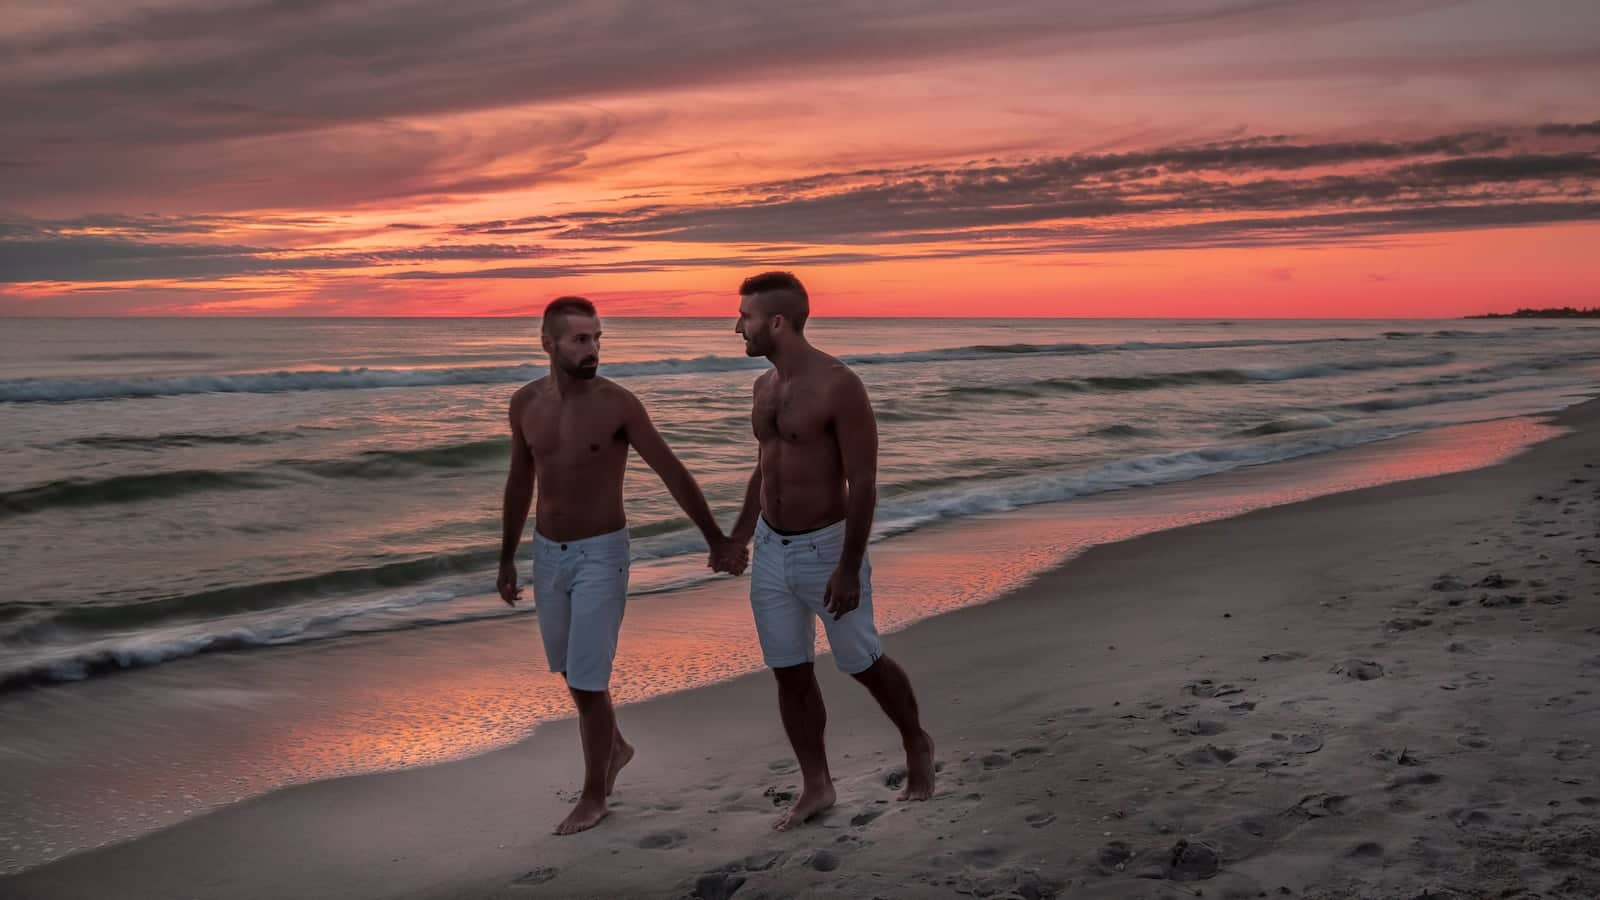 Fort Lauderdale is a wonderful beach destination and one of the most gay friendly cities in the world